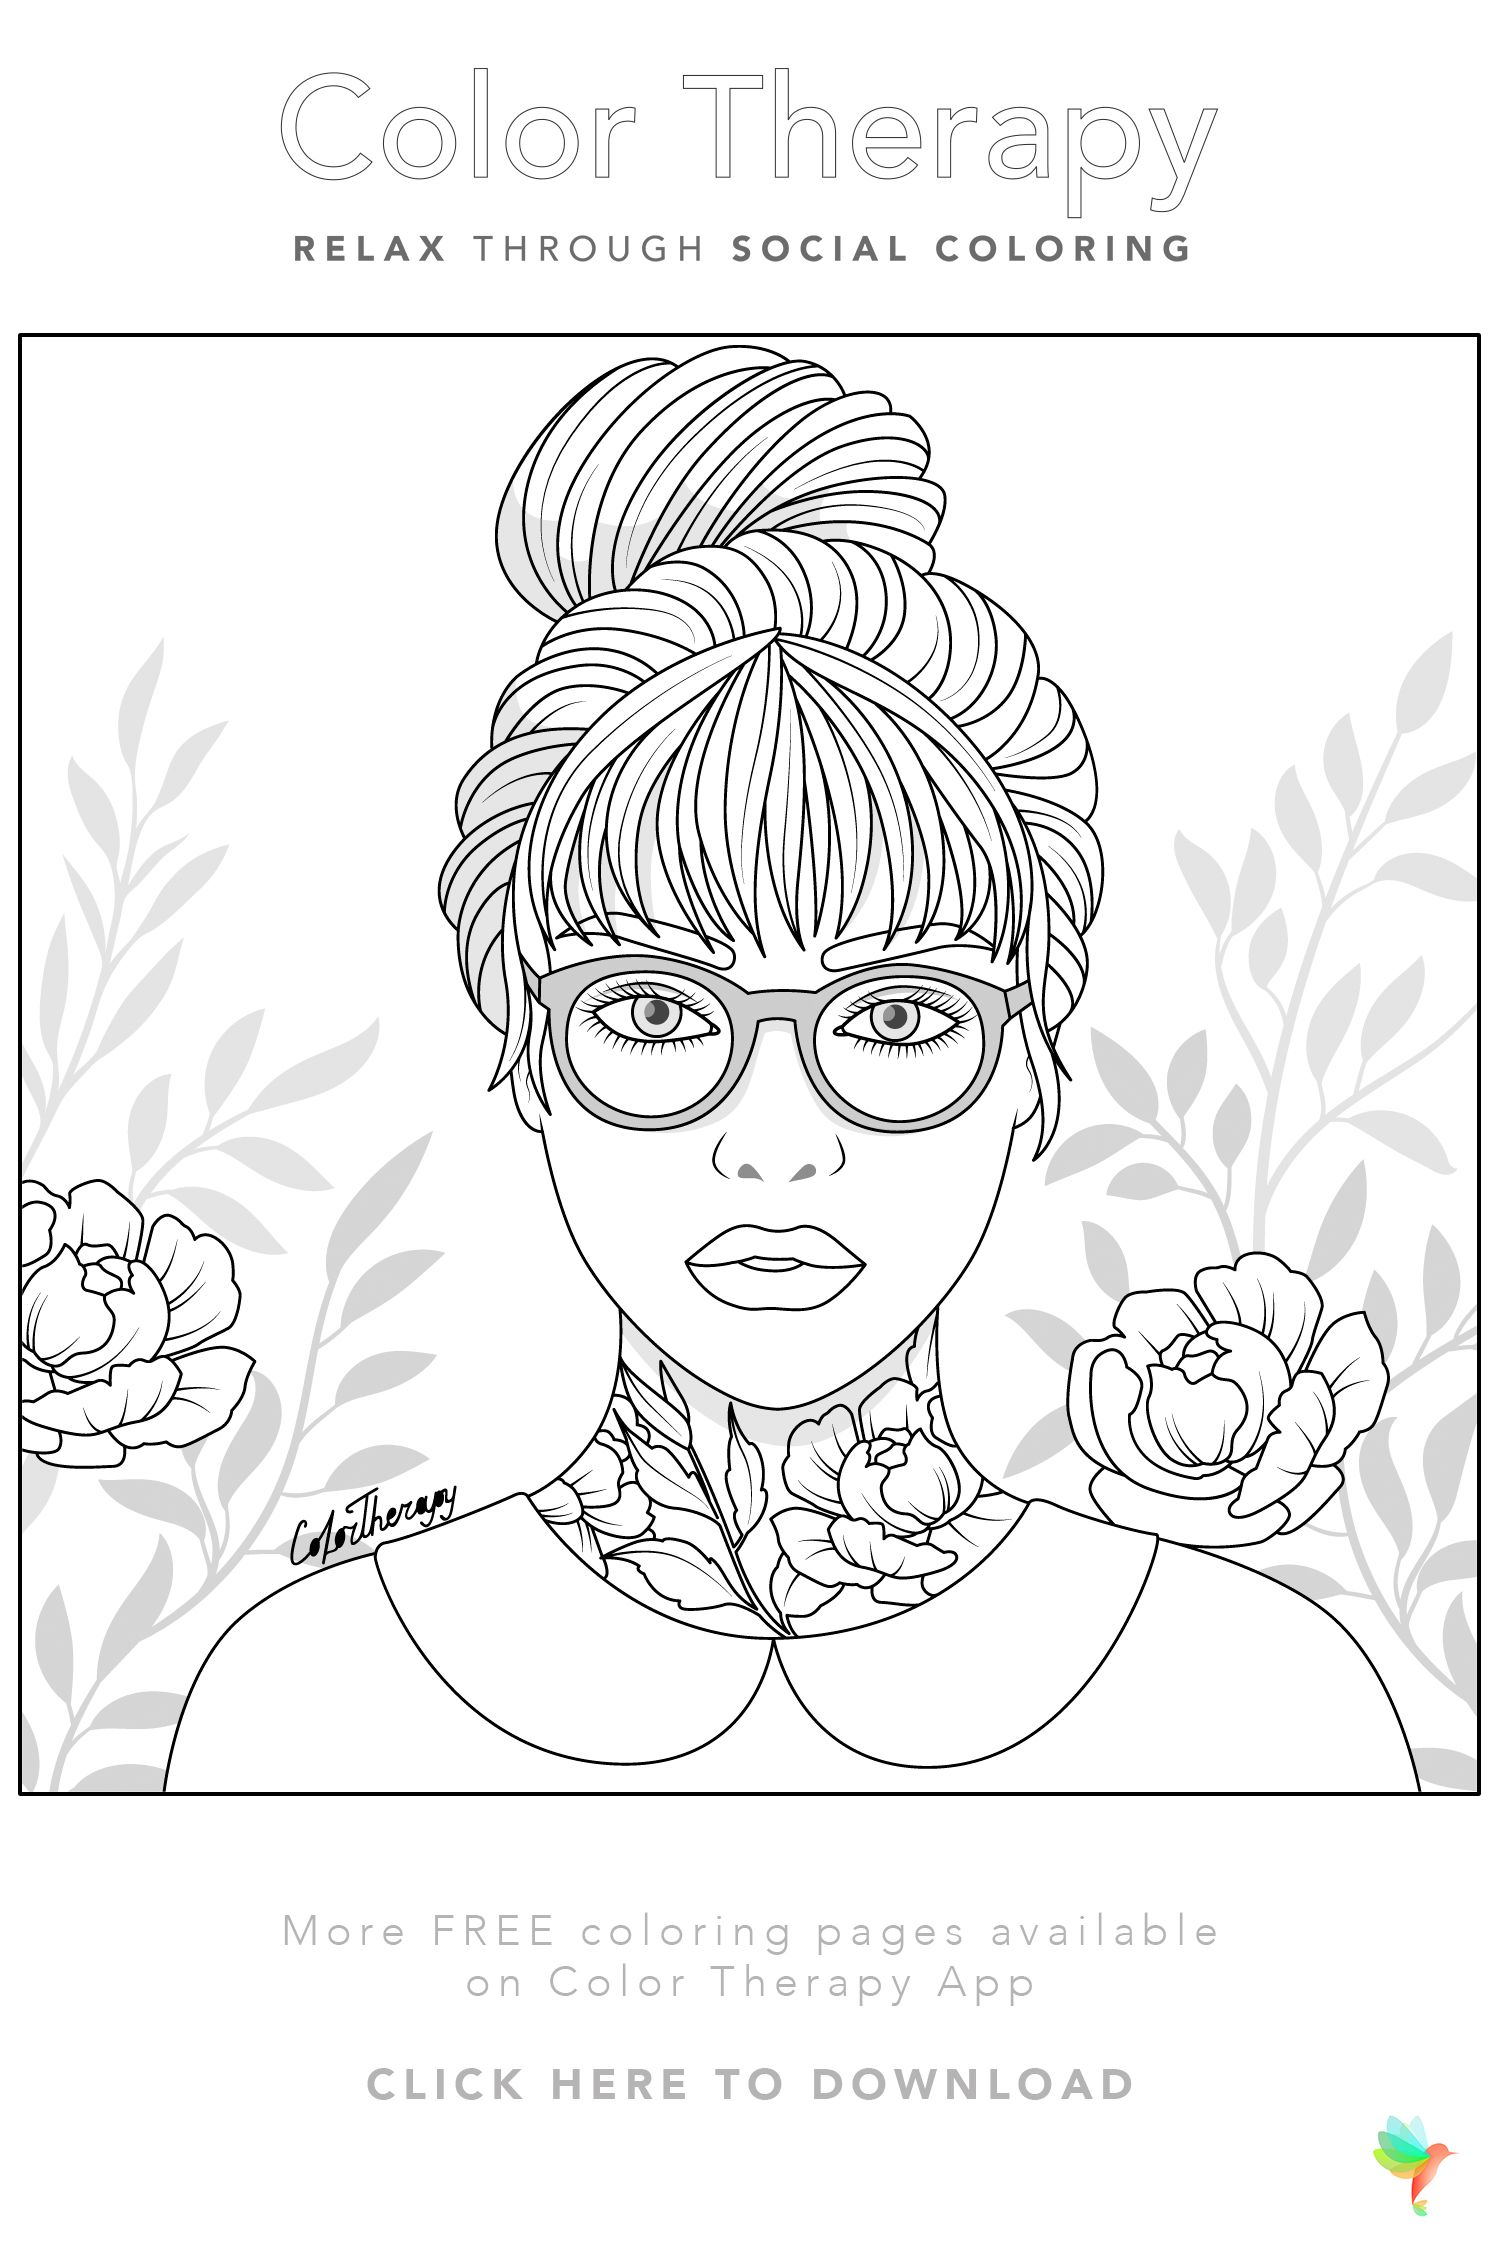 Color Therapy Gift Of The Day Free Coloring Template Cool Coloring Pages Cute Coloring Pages Color Therapy